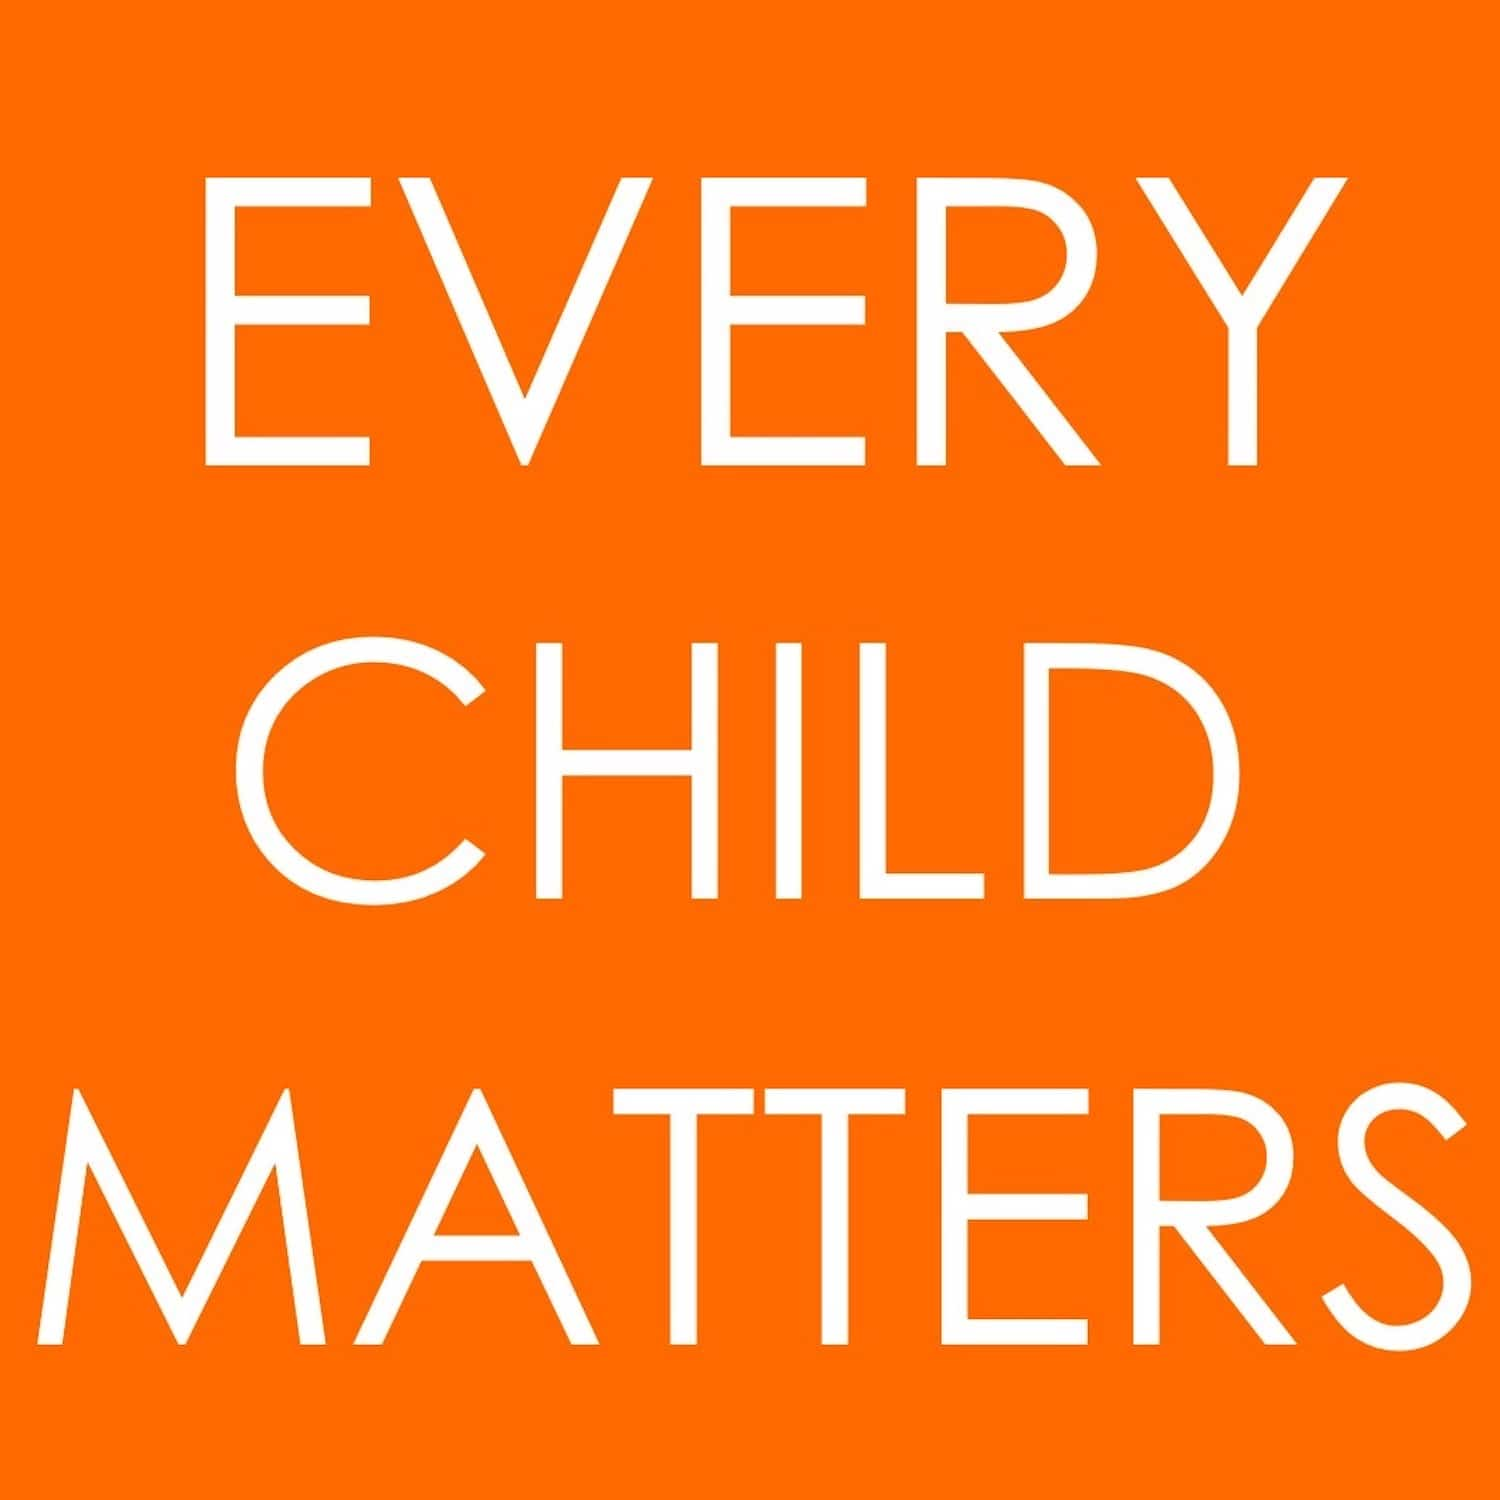 Every Child Matters – the meaning behind Orange Shirt Day